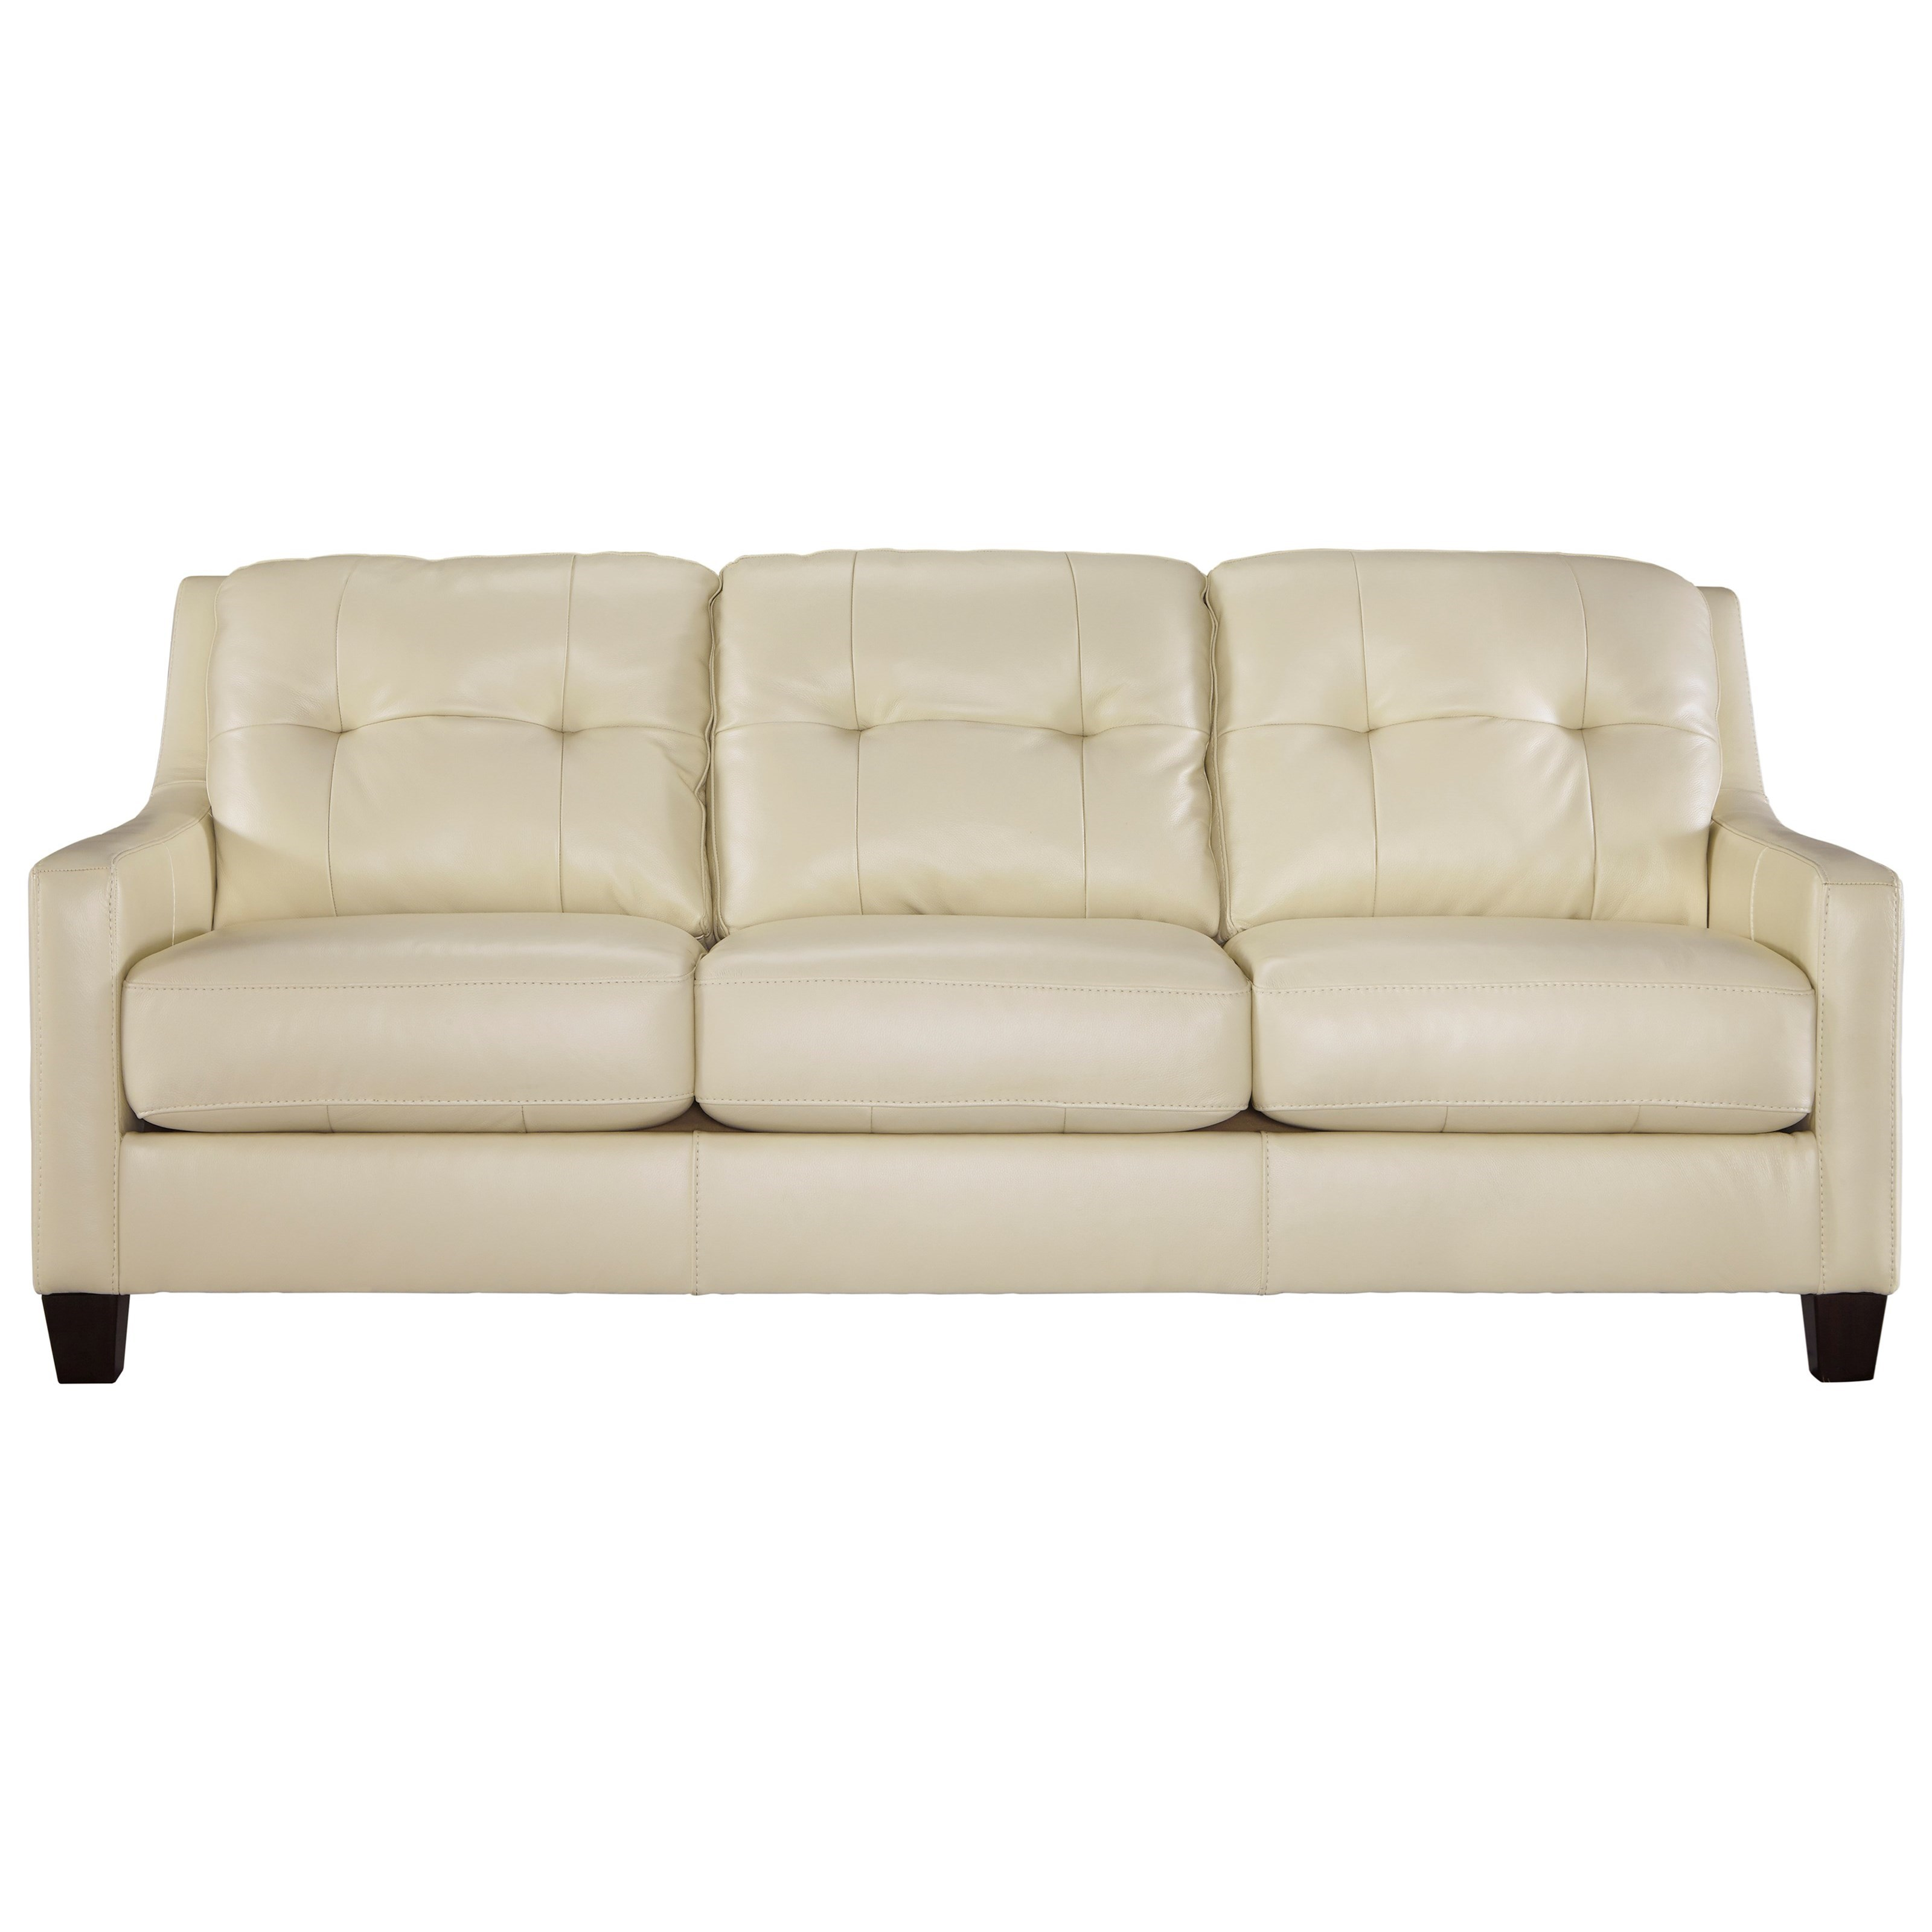 Signature Design by Ashley O'Kean Sofa - Item Number: 5910238